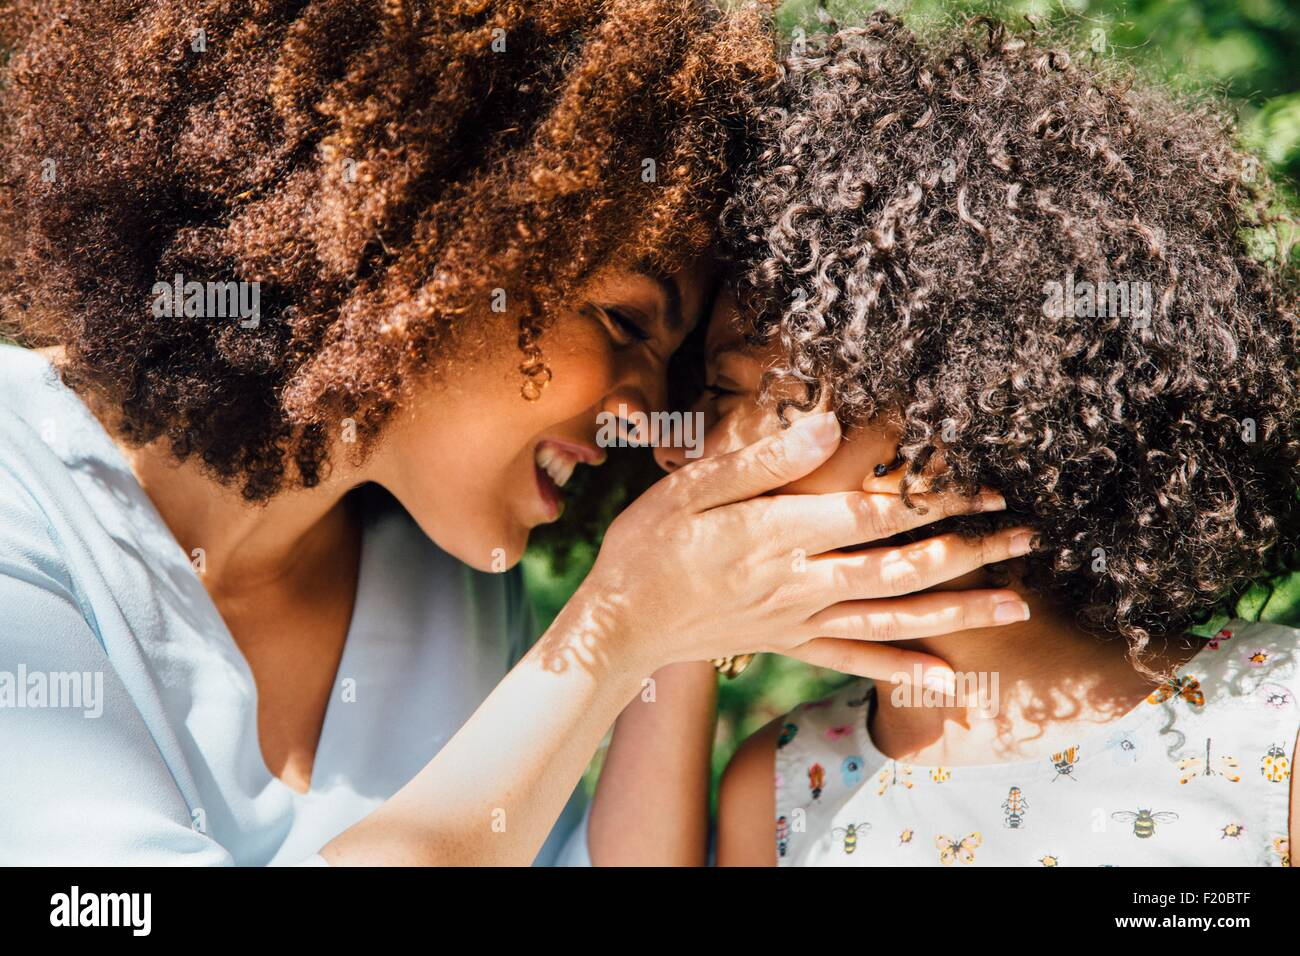 Close up side view of mother and daughter nose to nose - Stock Image